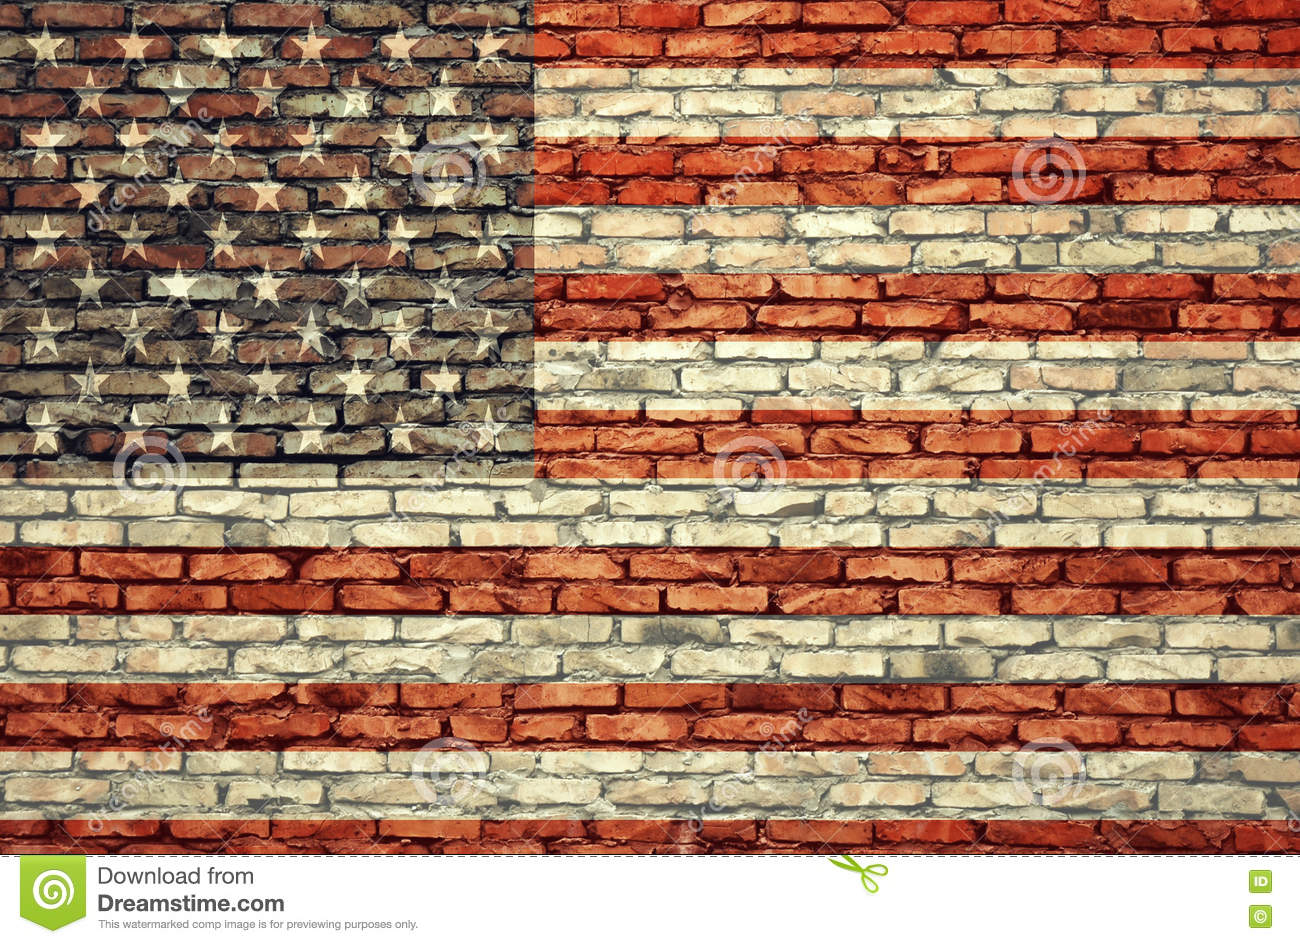 American flag on the brick wall